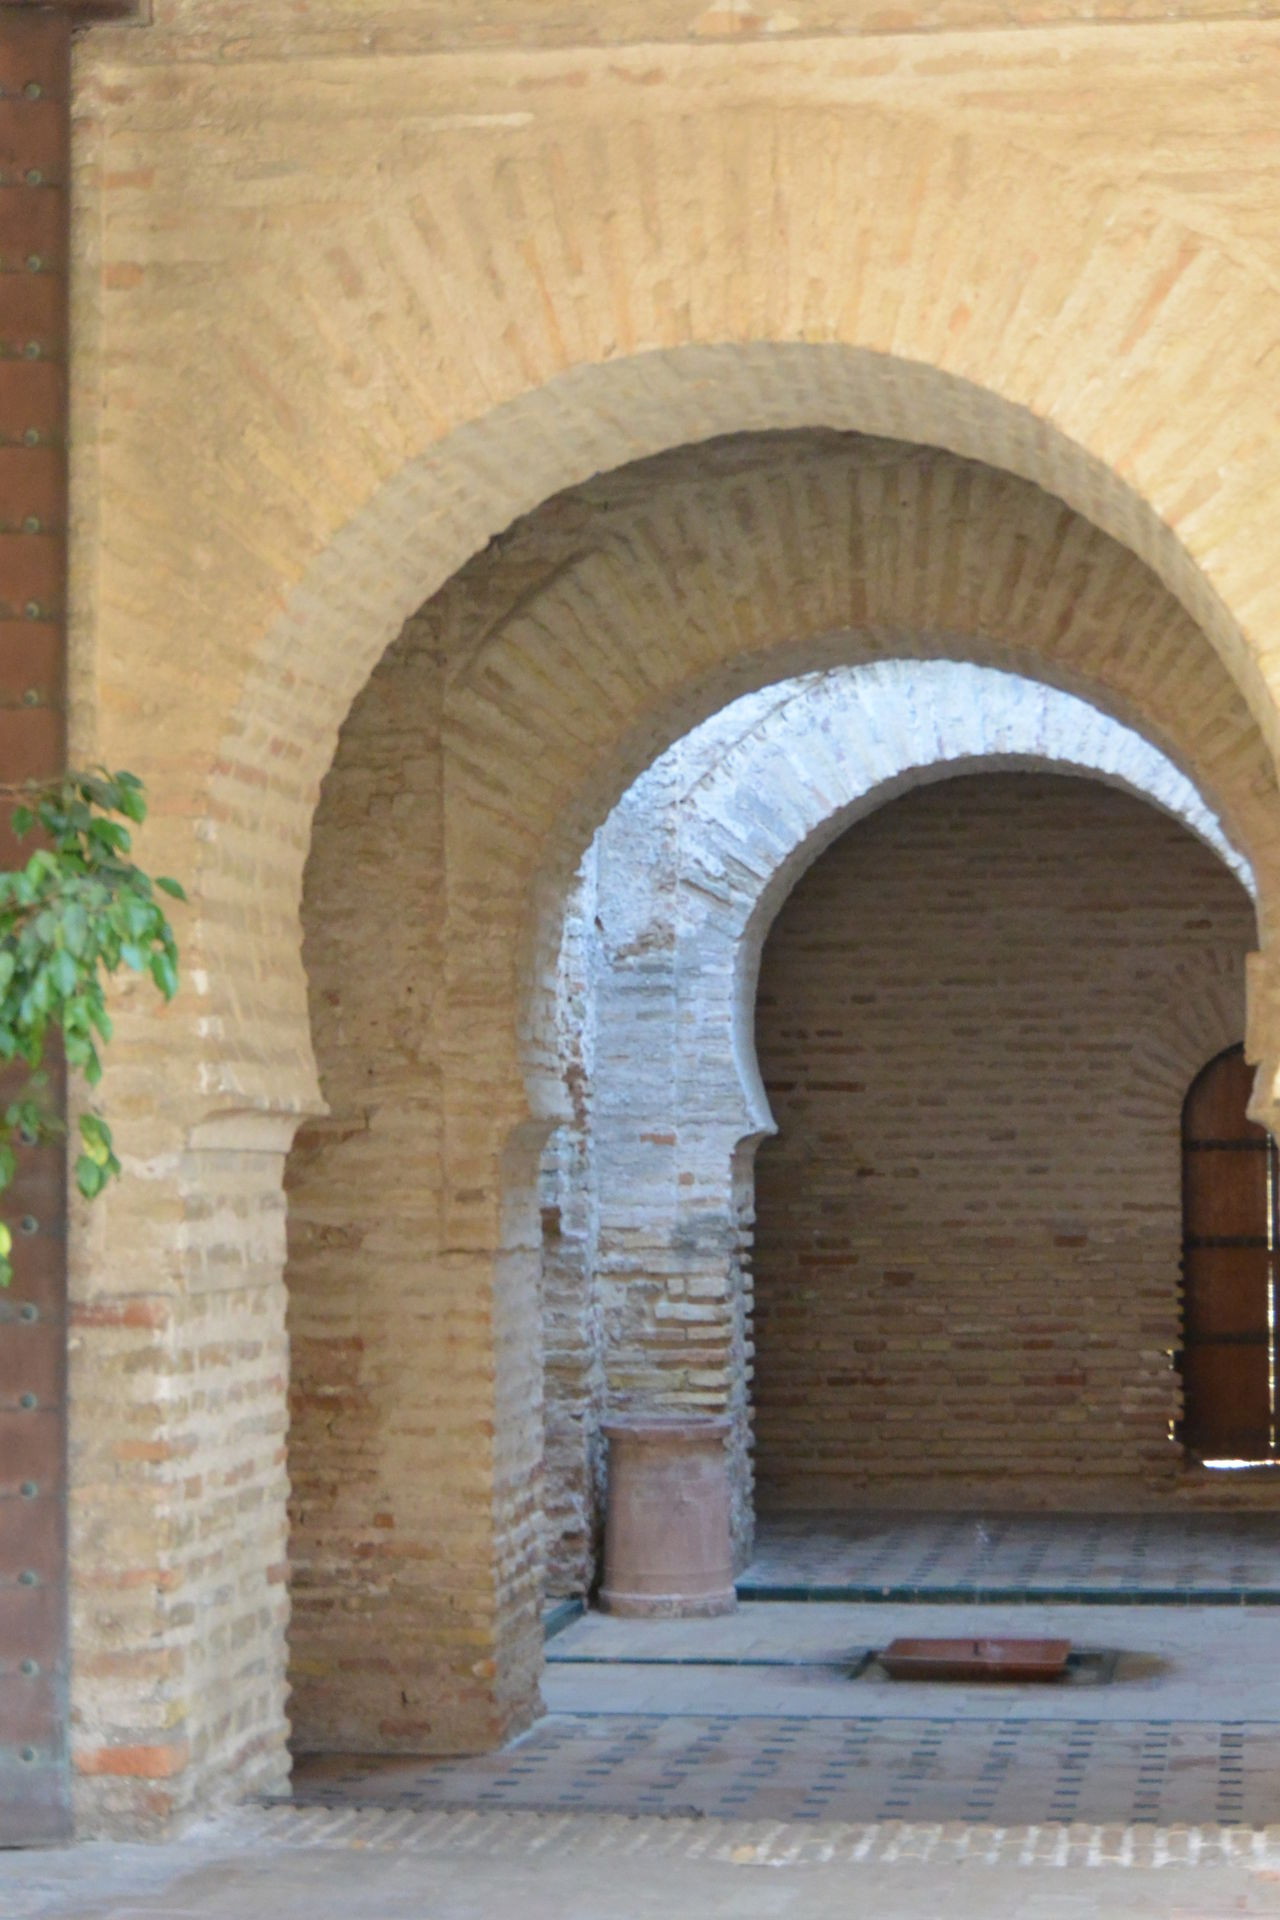 Alcazar Arch Architecture Archway Brick Built Structure Day Eye4photography  From My Point Of View Mosque Nikon No People Purist In Photography Purist No Edit No Filter Repetition The Purist (no Edit, No Filter)